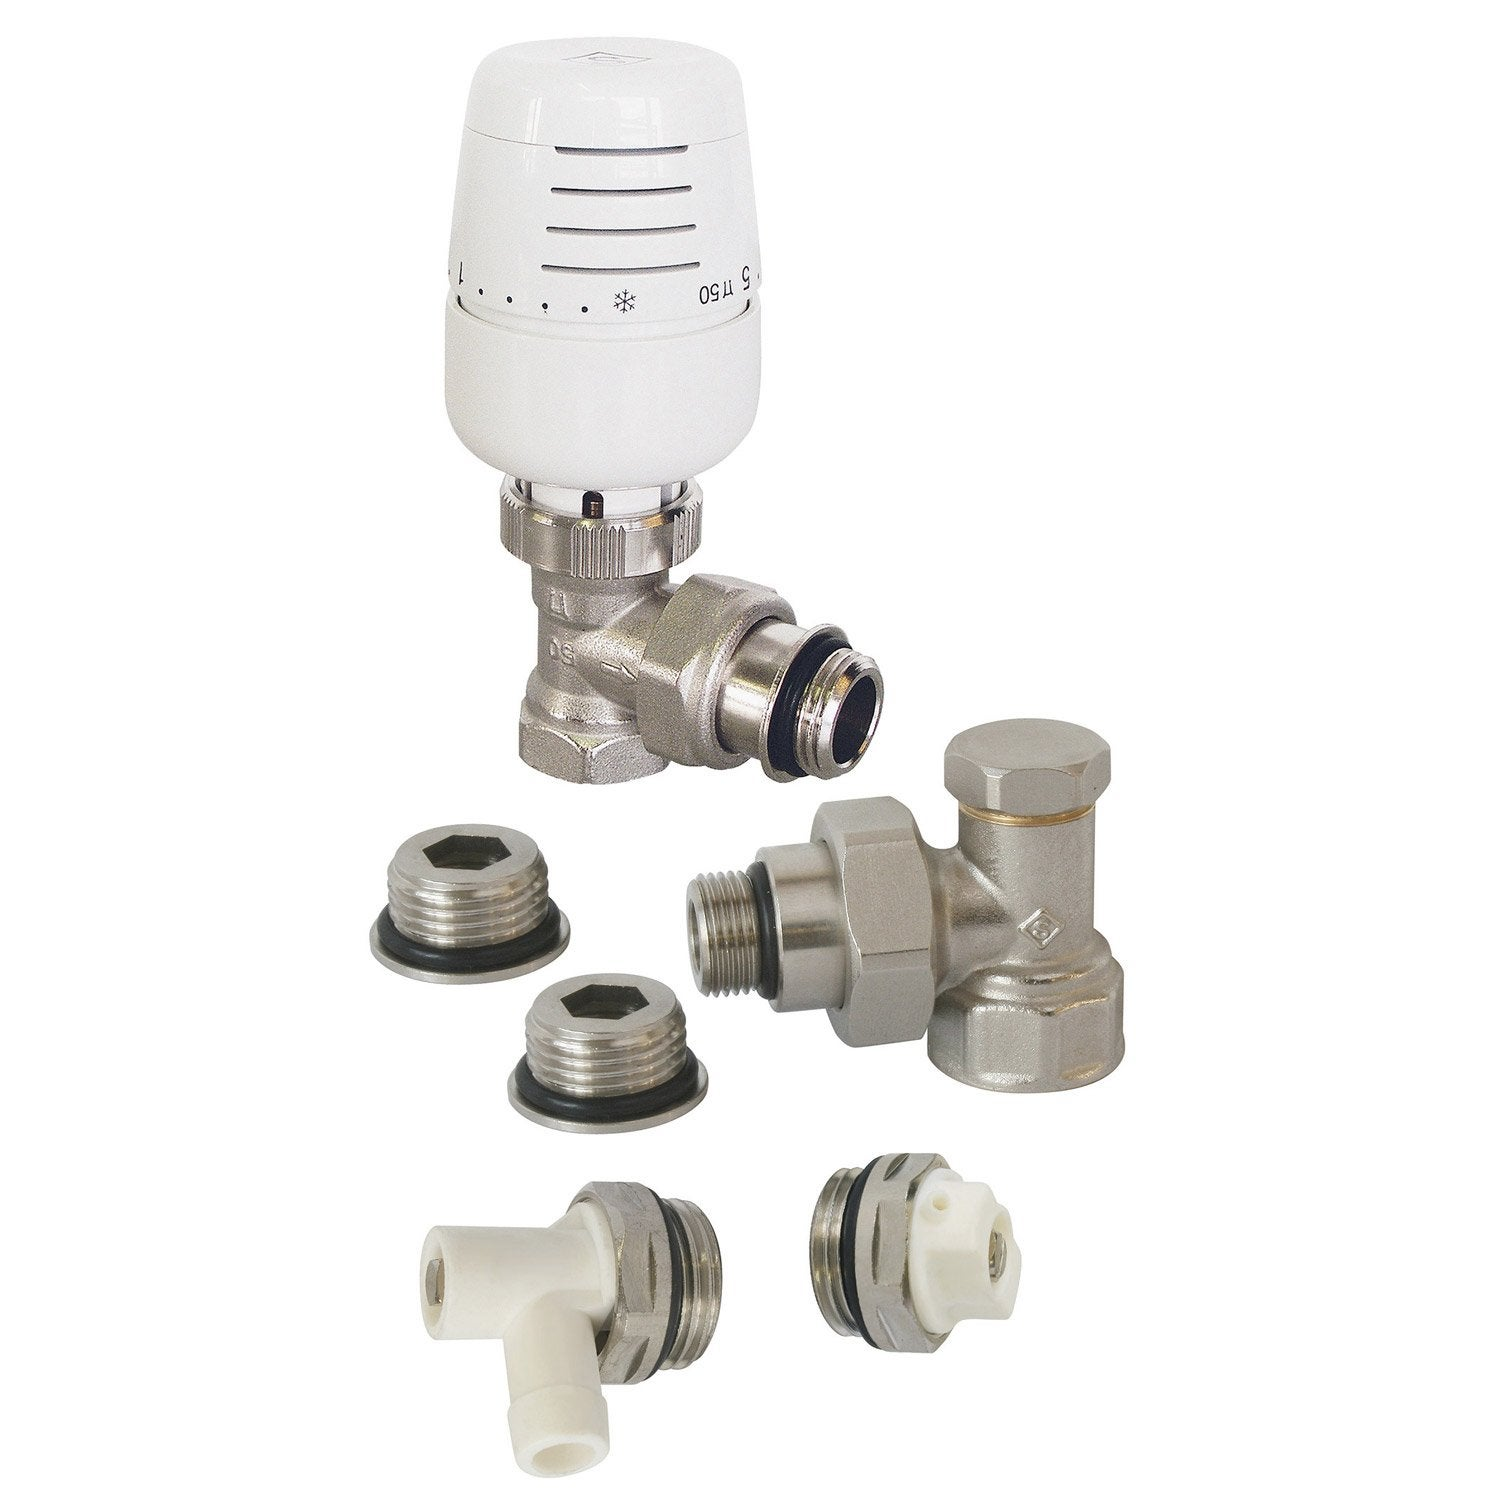 Kit robinet thermostatique equerre laiton blanc ecopro leroy merlin - Thermostat leroy merlin ...